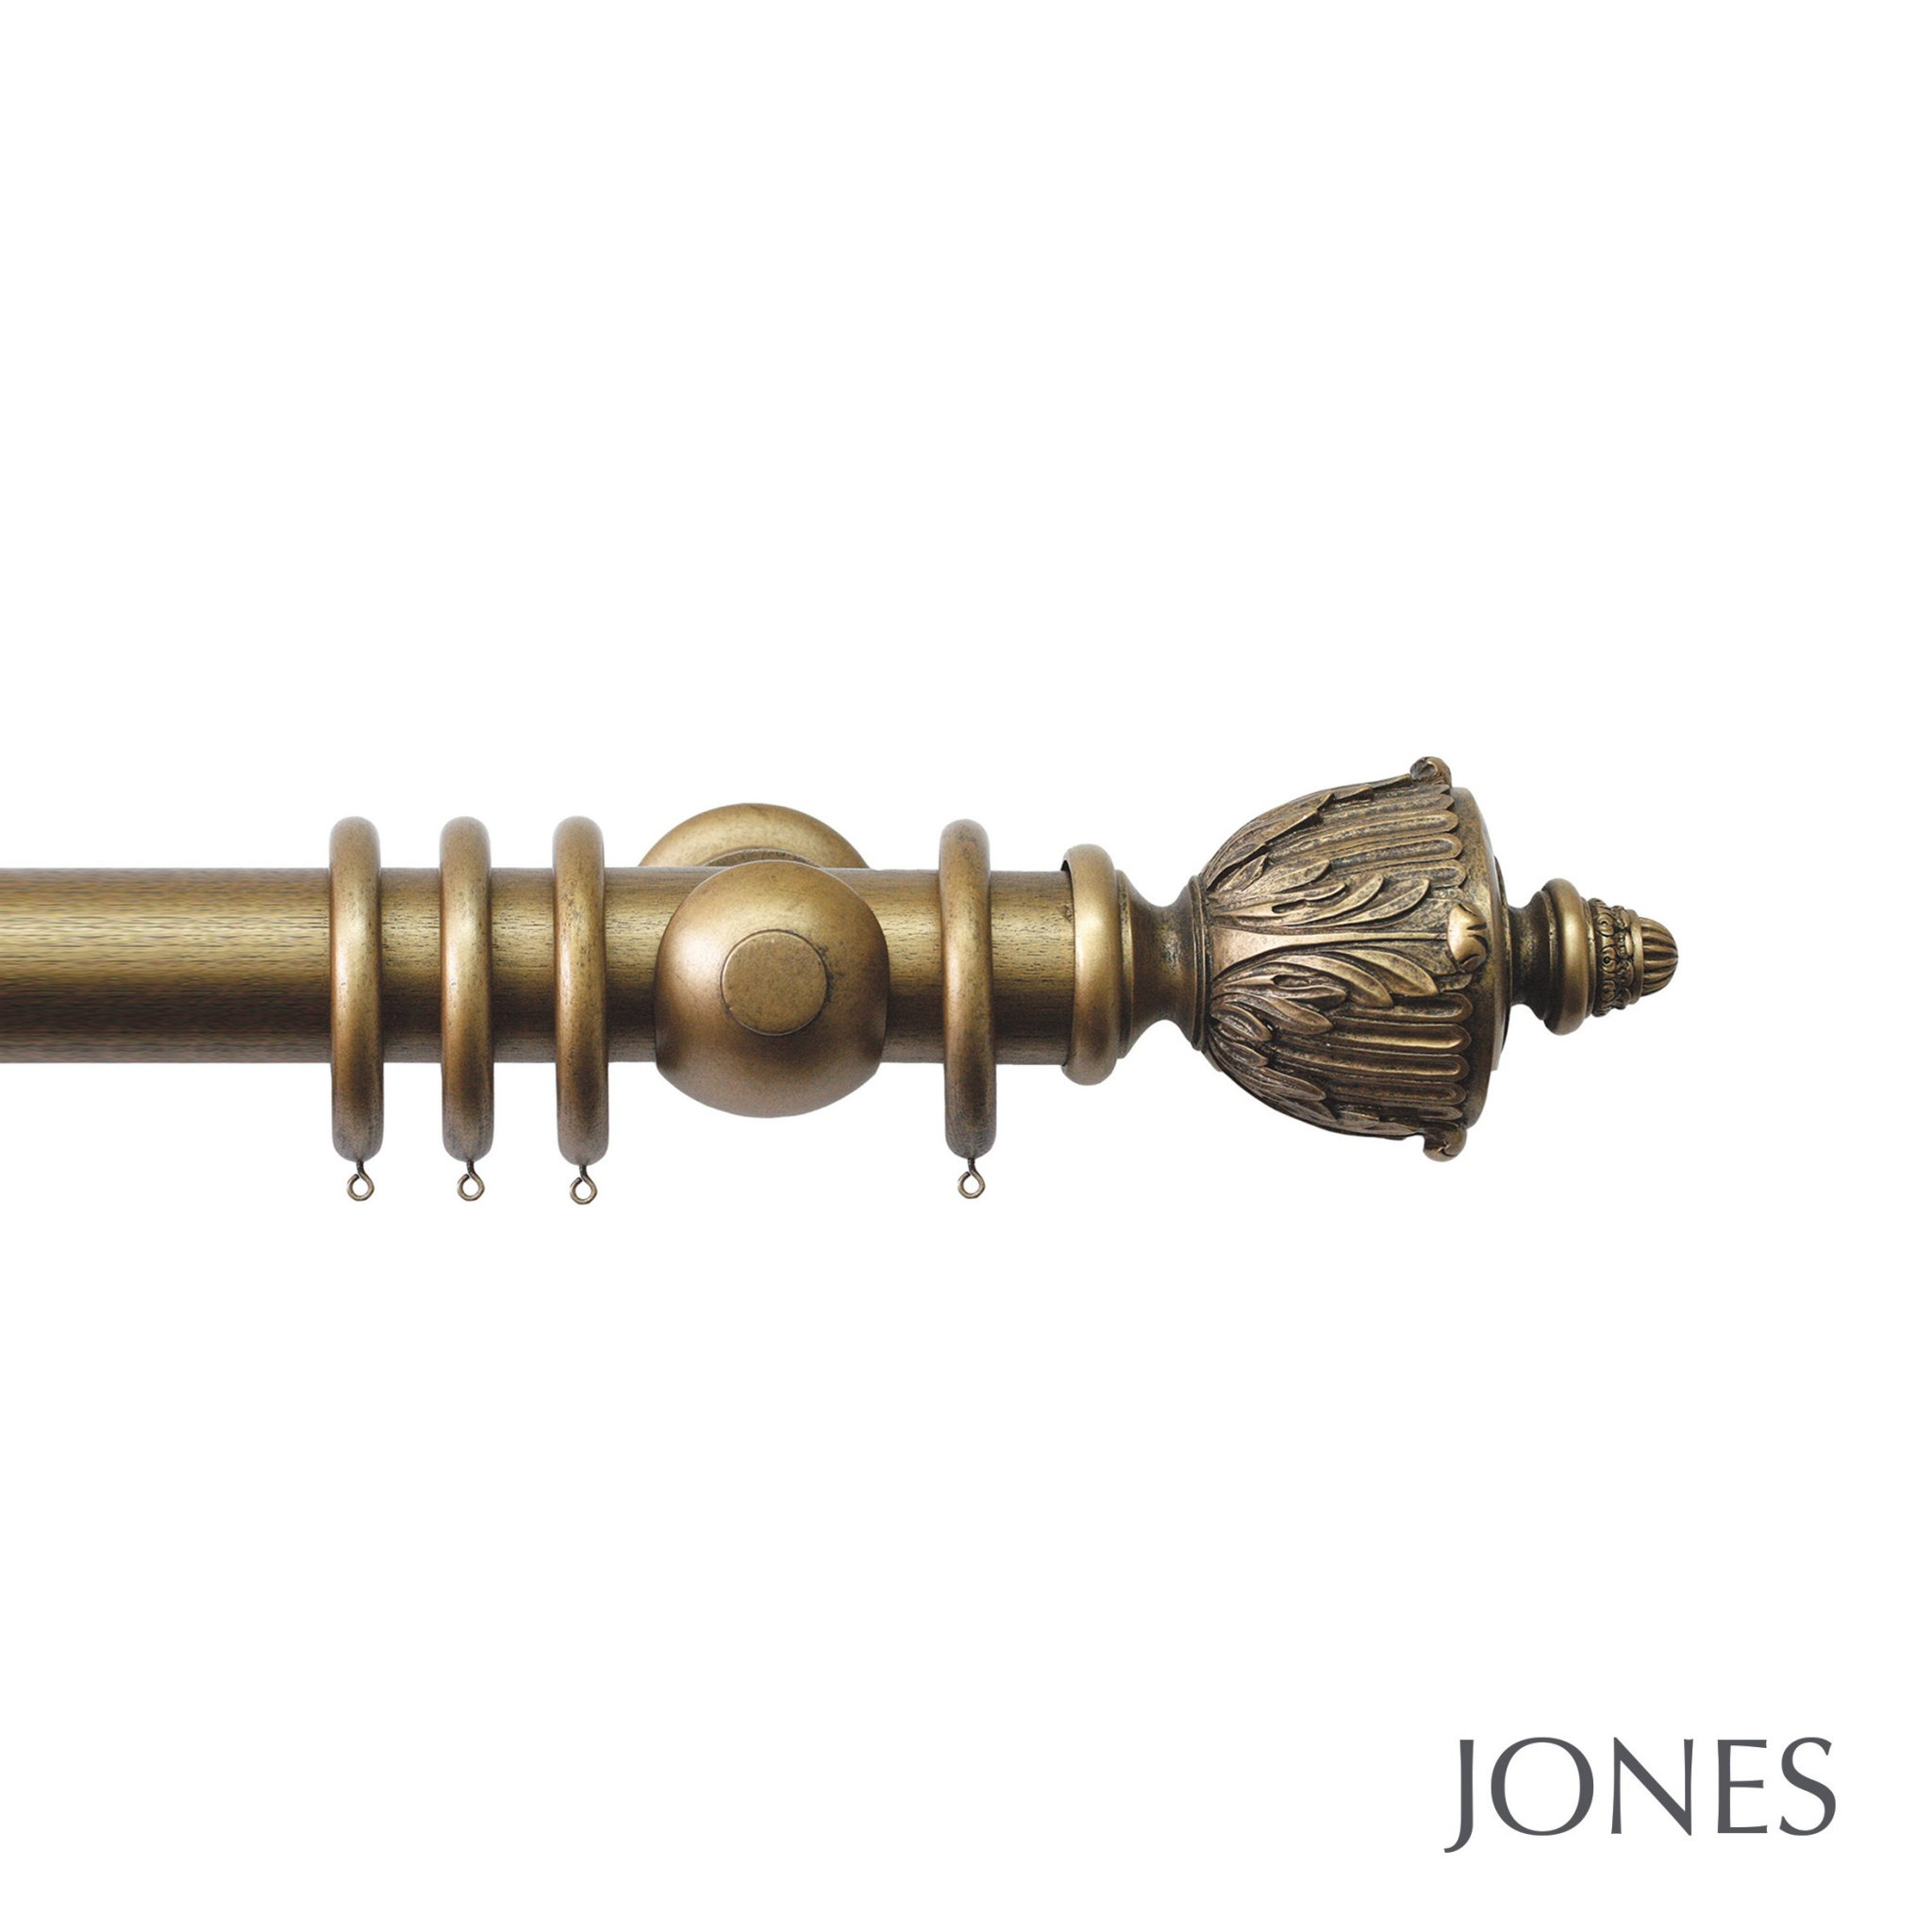 Jones Grande Handcrafted 63mm Wooden Curtain Pole Acanthus